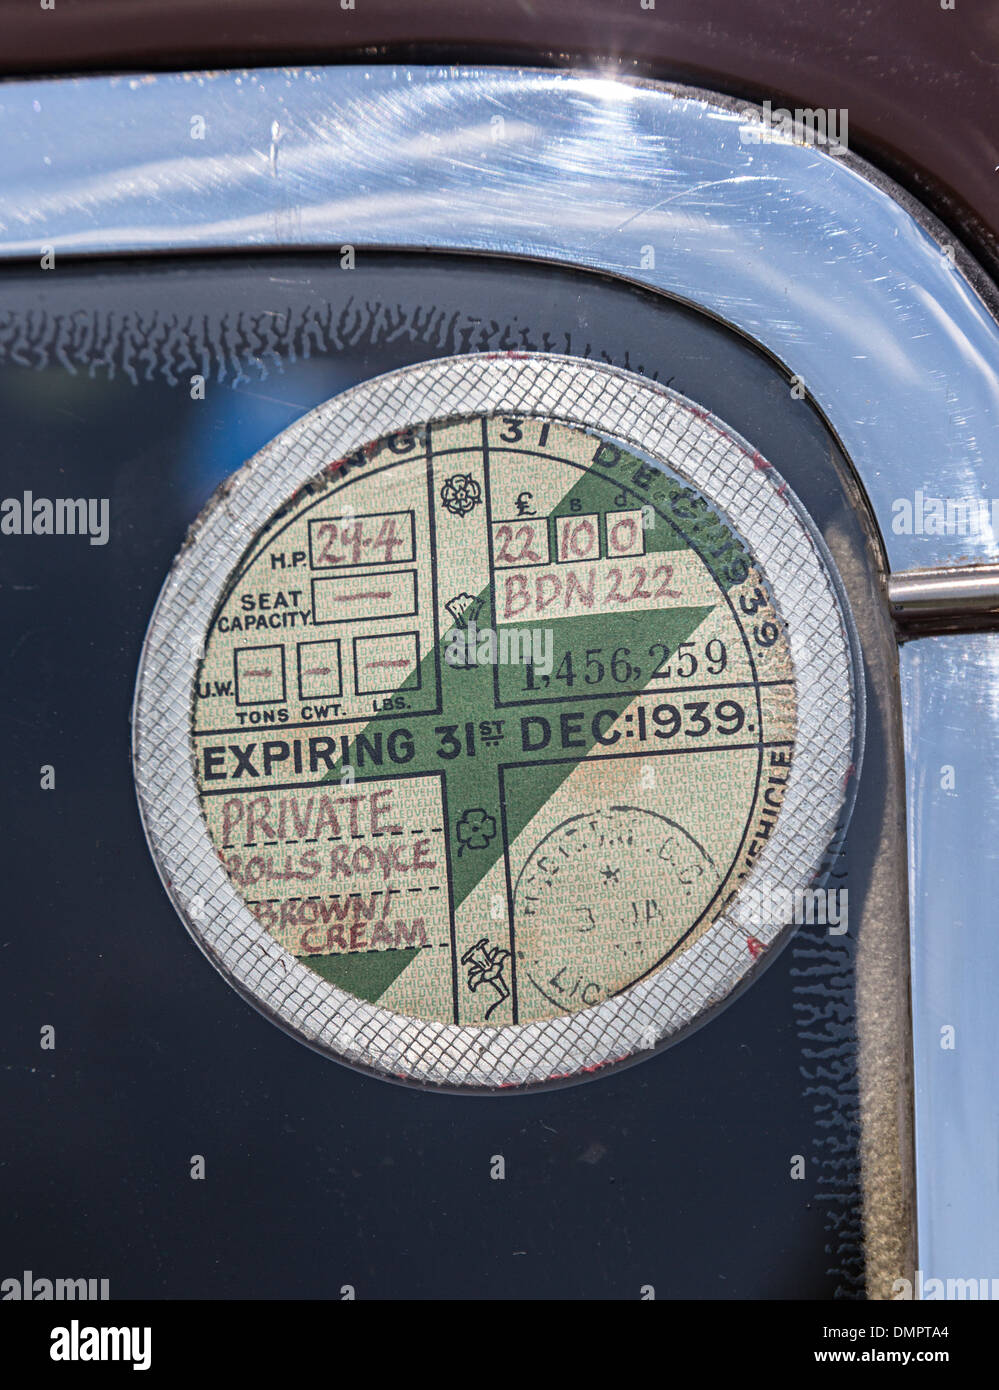 Old style 1939 tax disk on Rolls Royce car - Stock Image